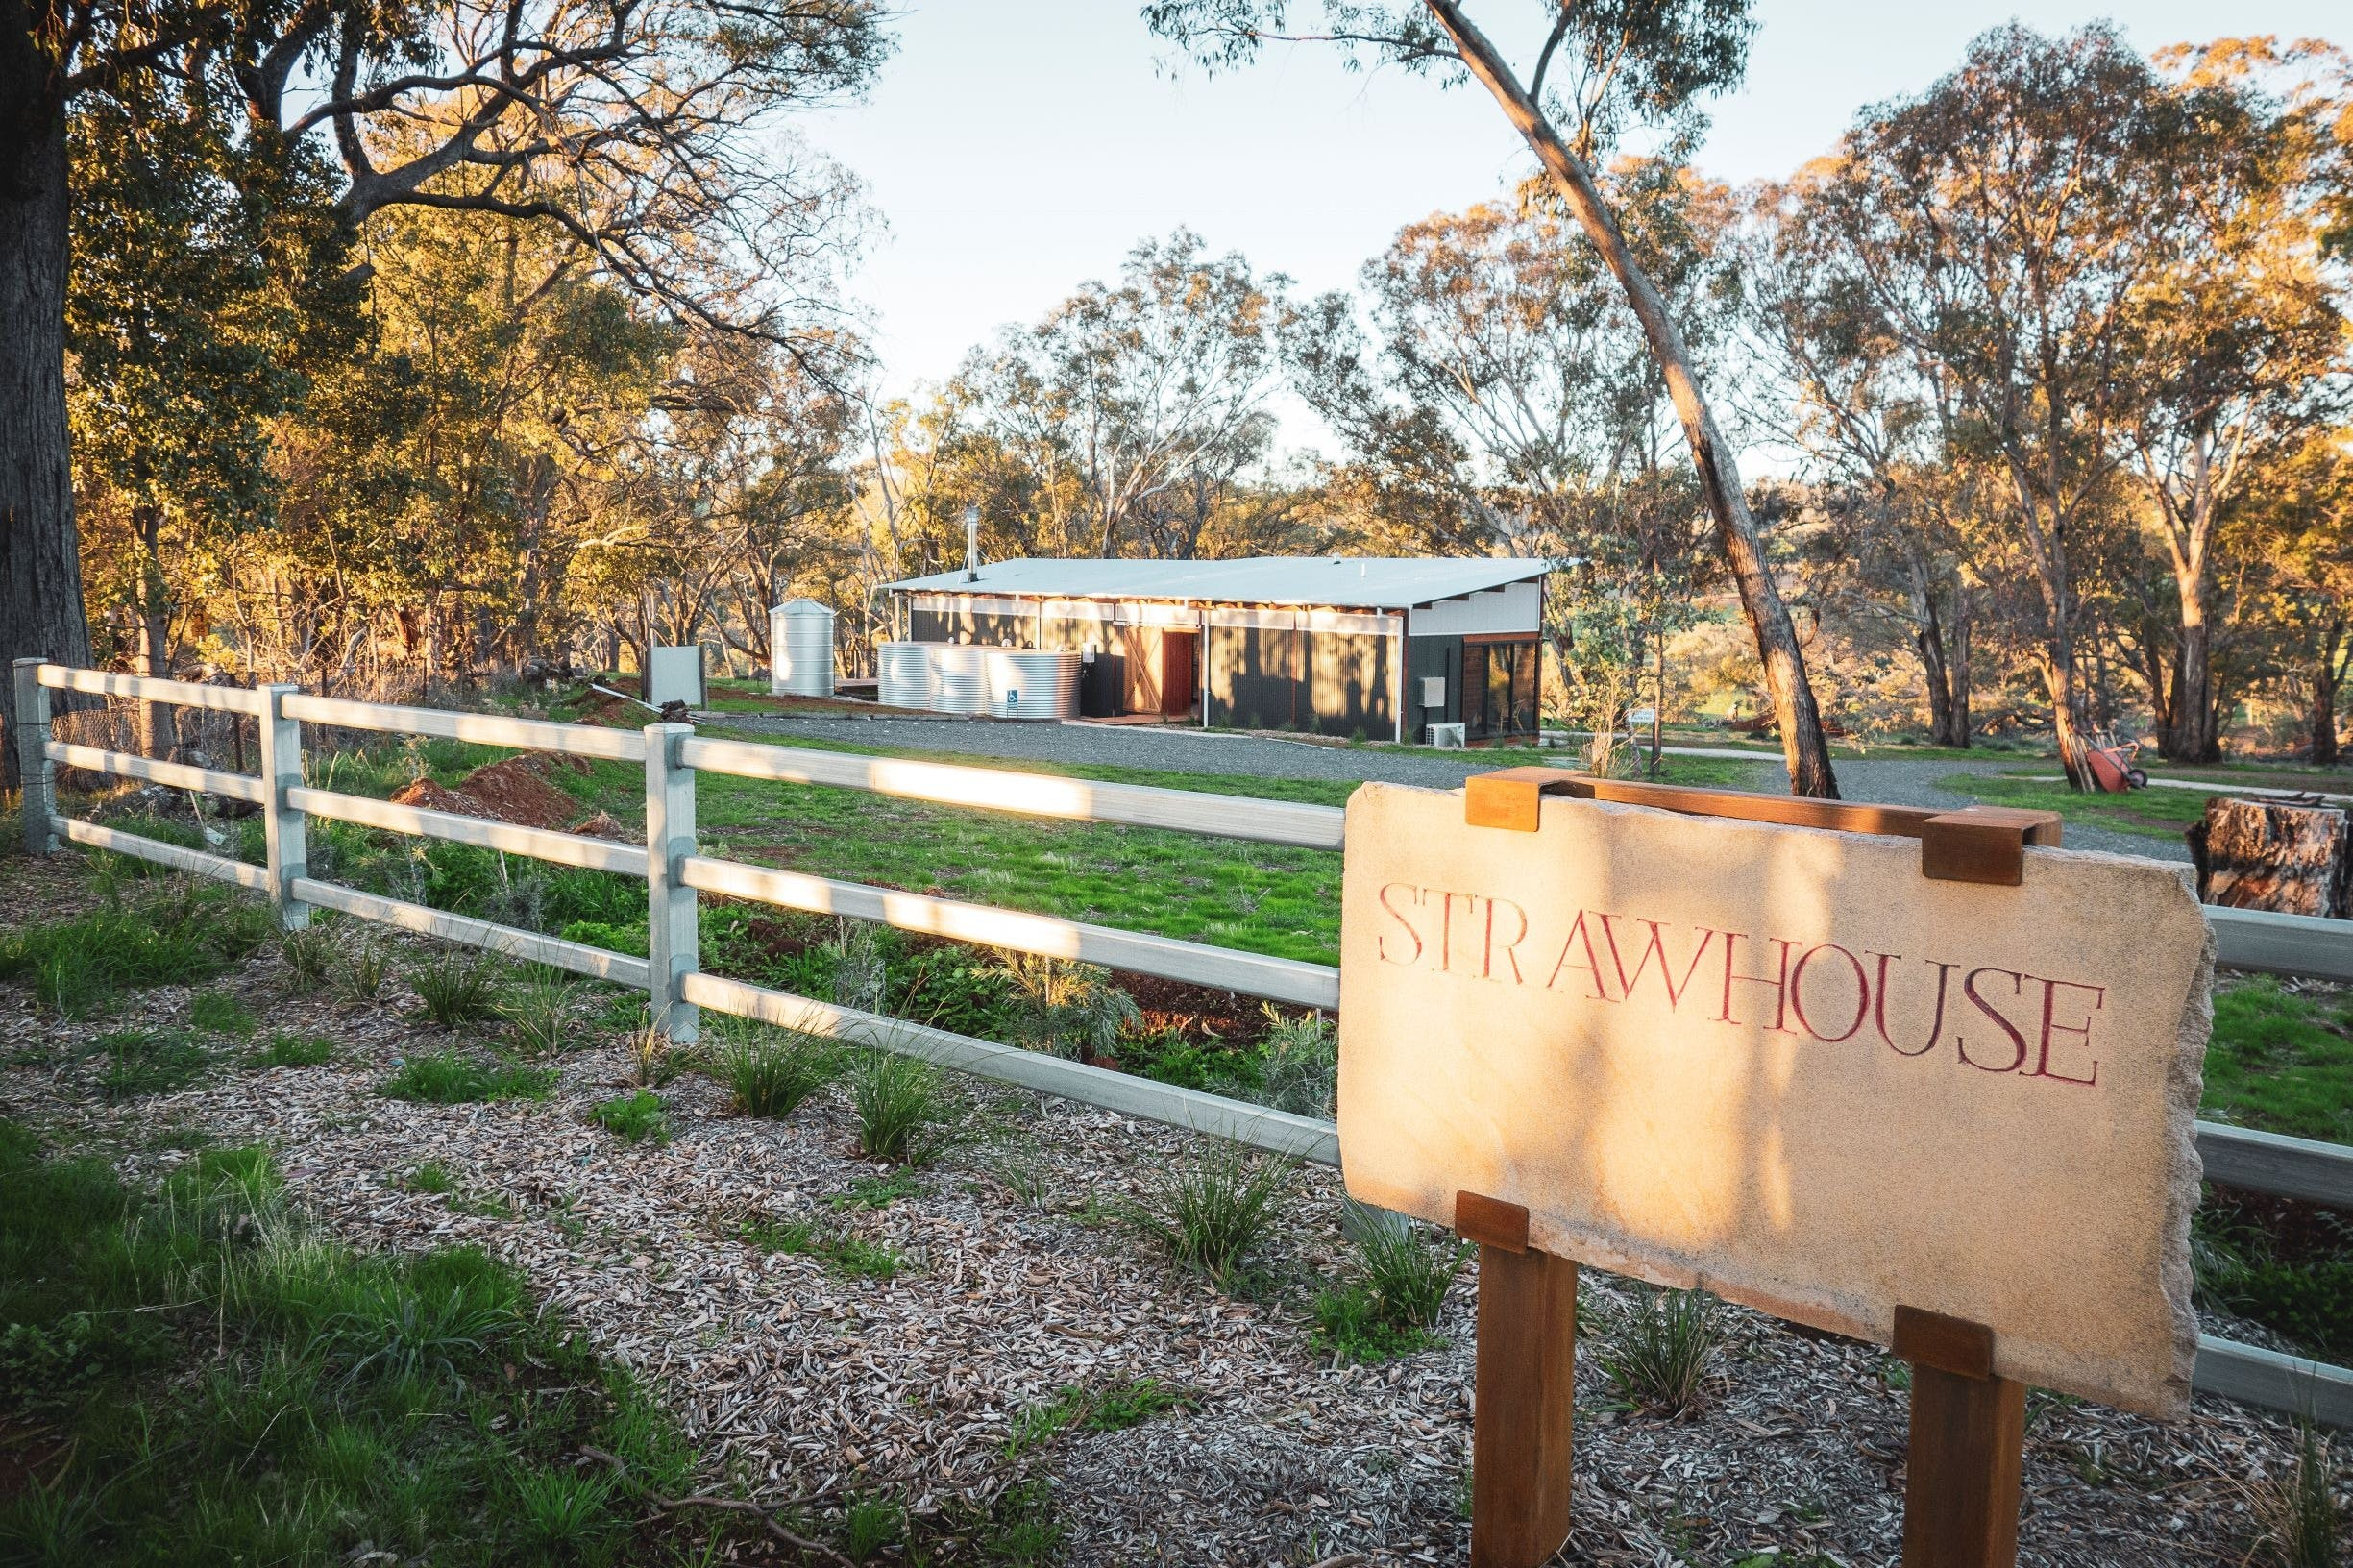 Strawhouse - Lismore Accommodation